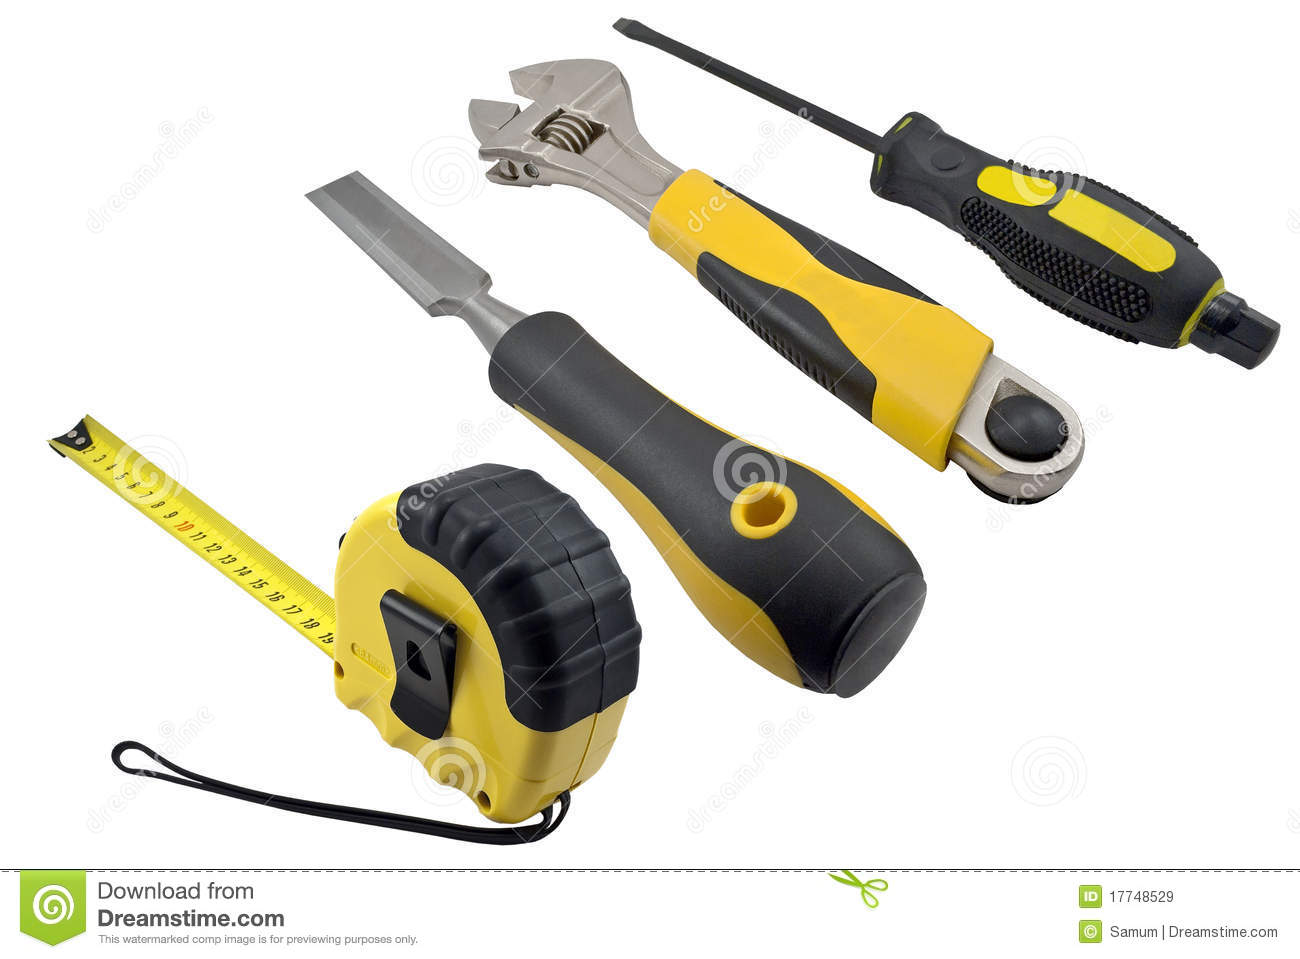 Spanner, large screwdriver and chisel